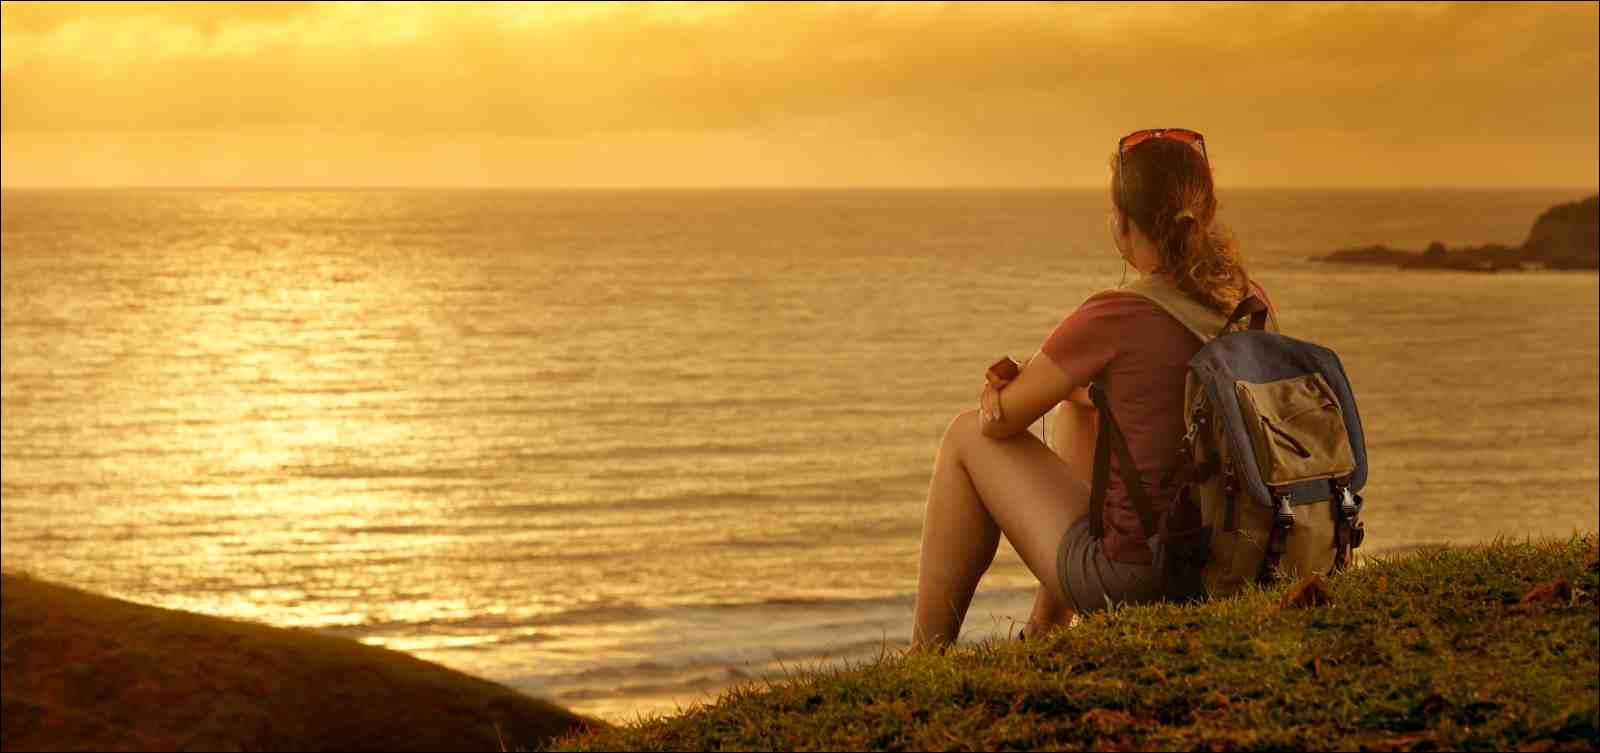 Young traveler with backpack enjoying sunset listening to music near ocean